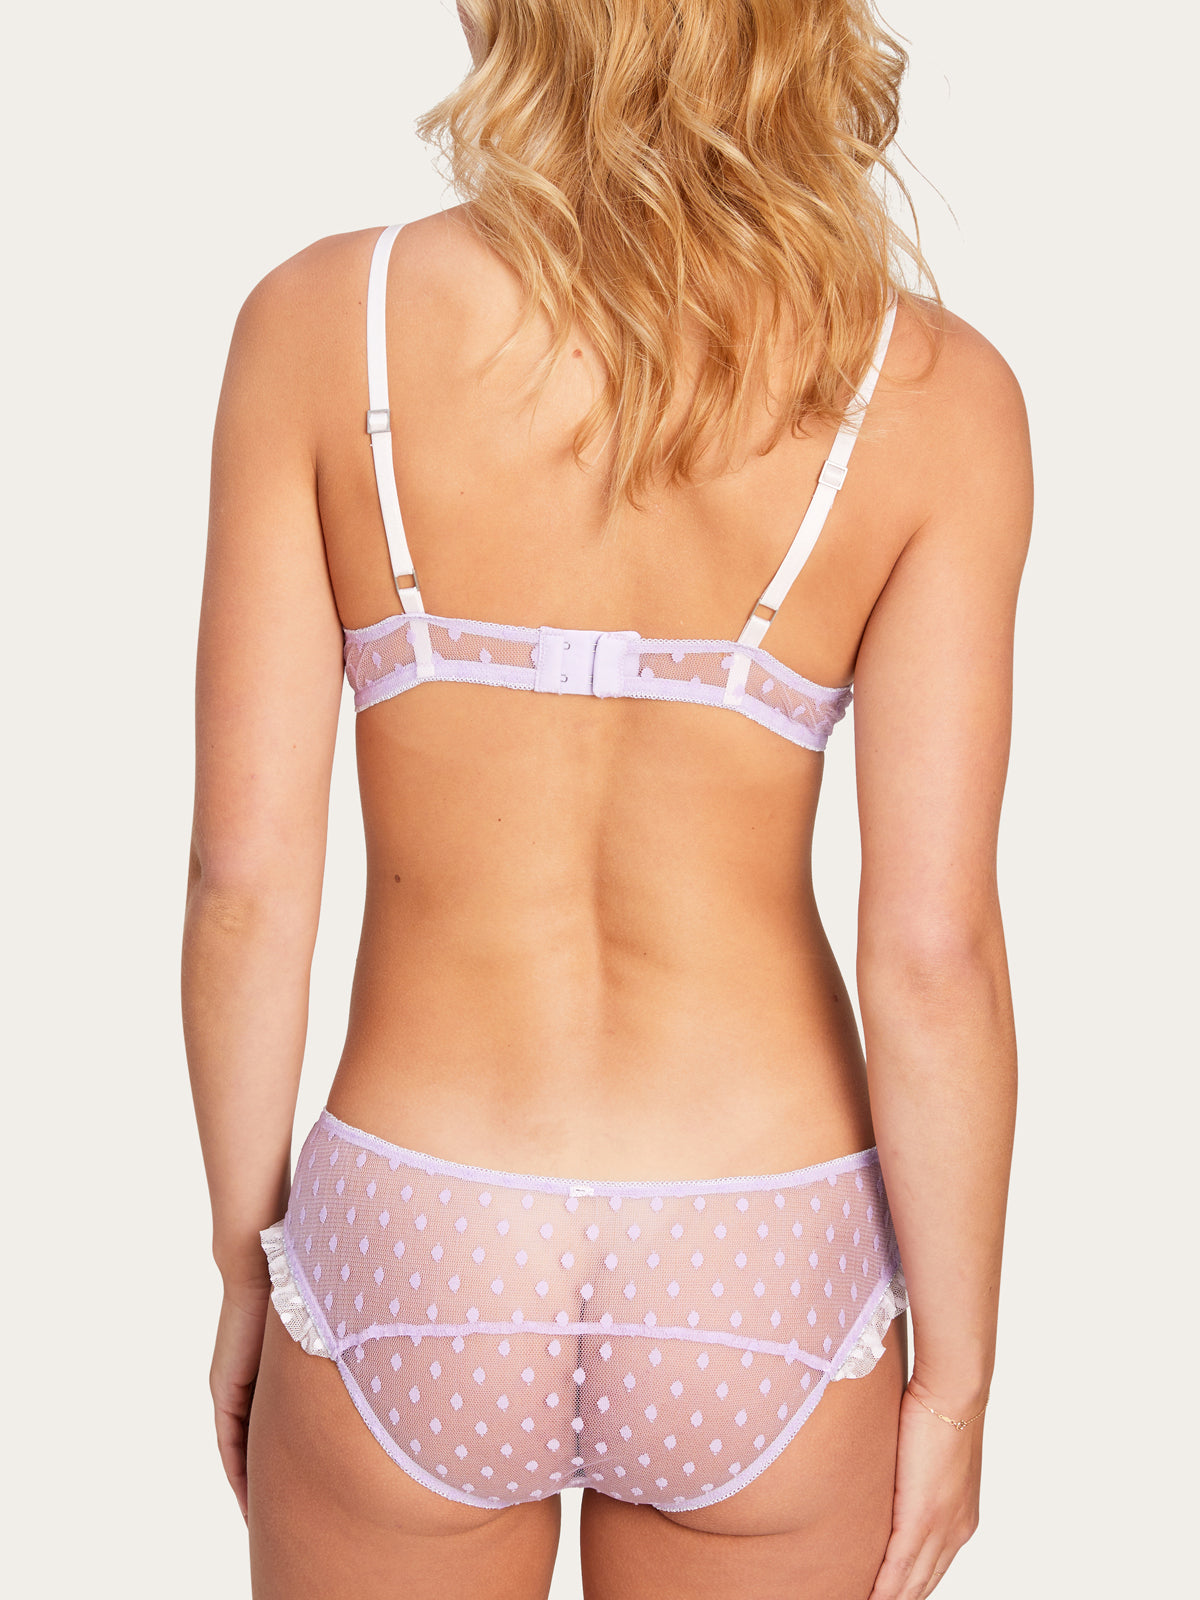 Fifi Panty in Cupcake By Morgan Lane